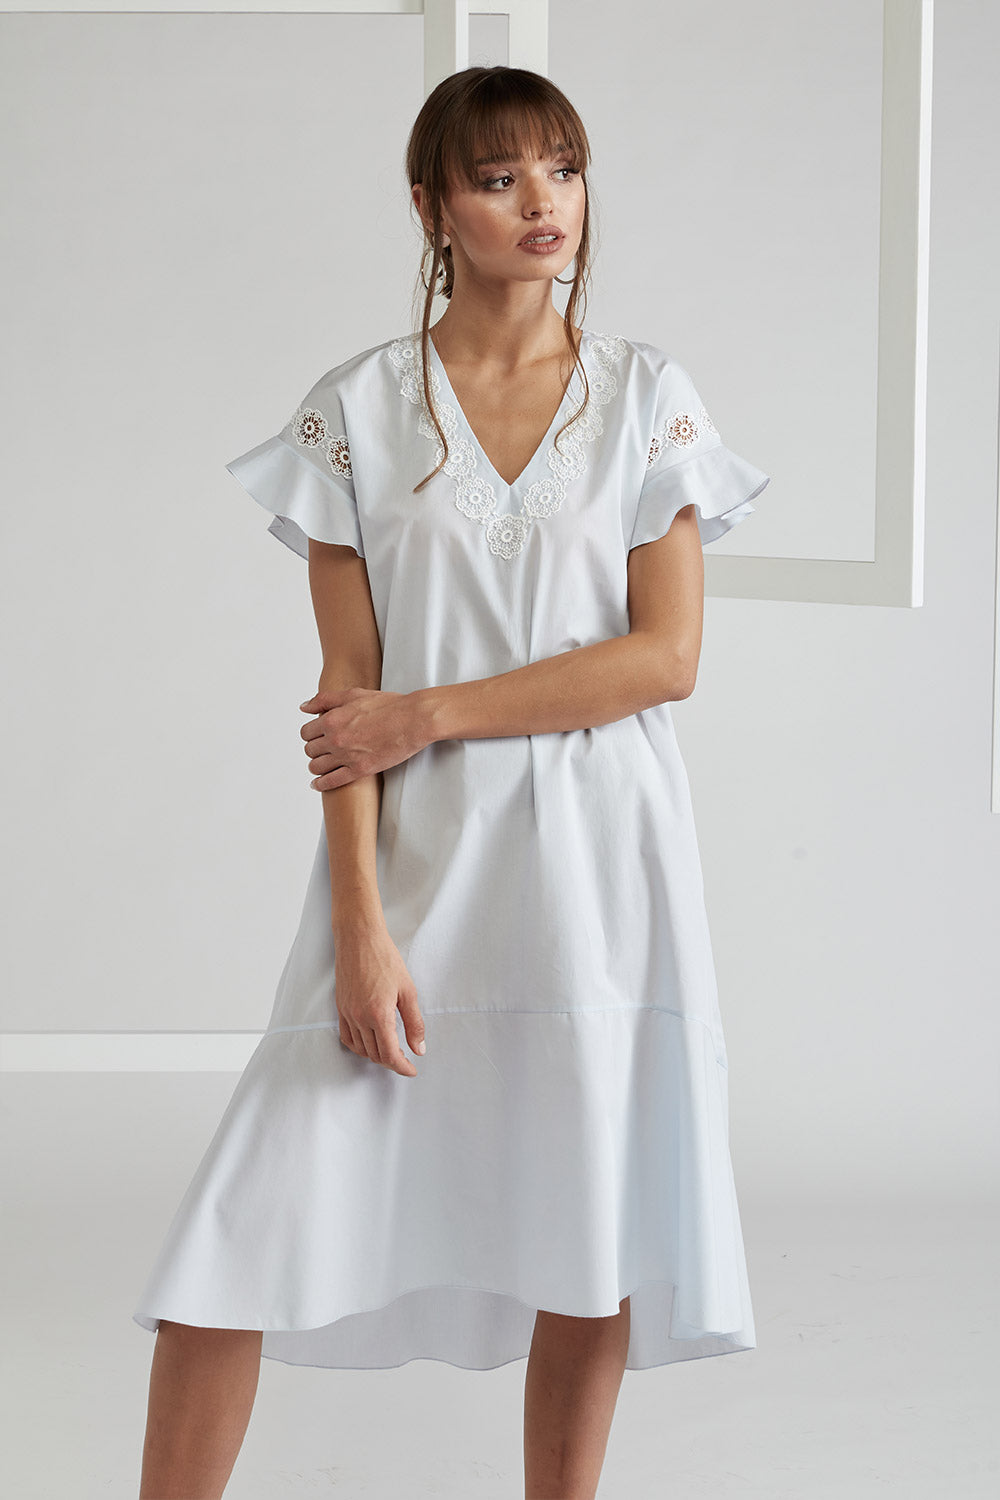 Trimmed Cotton Poplin Dress - Miss Bocan Light Blue